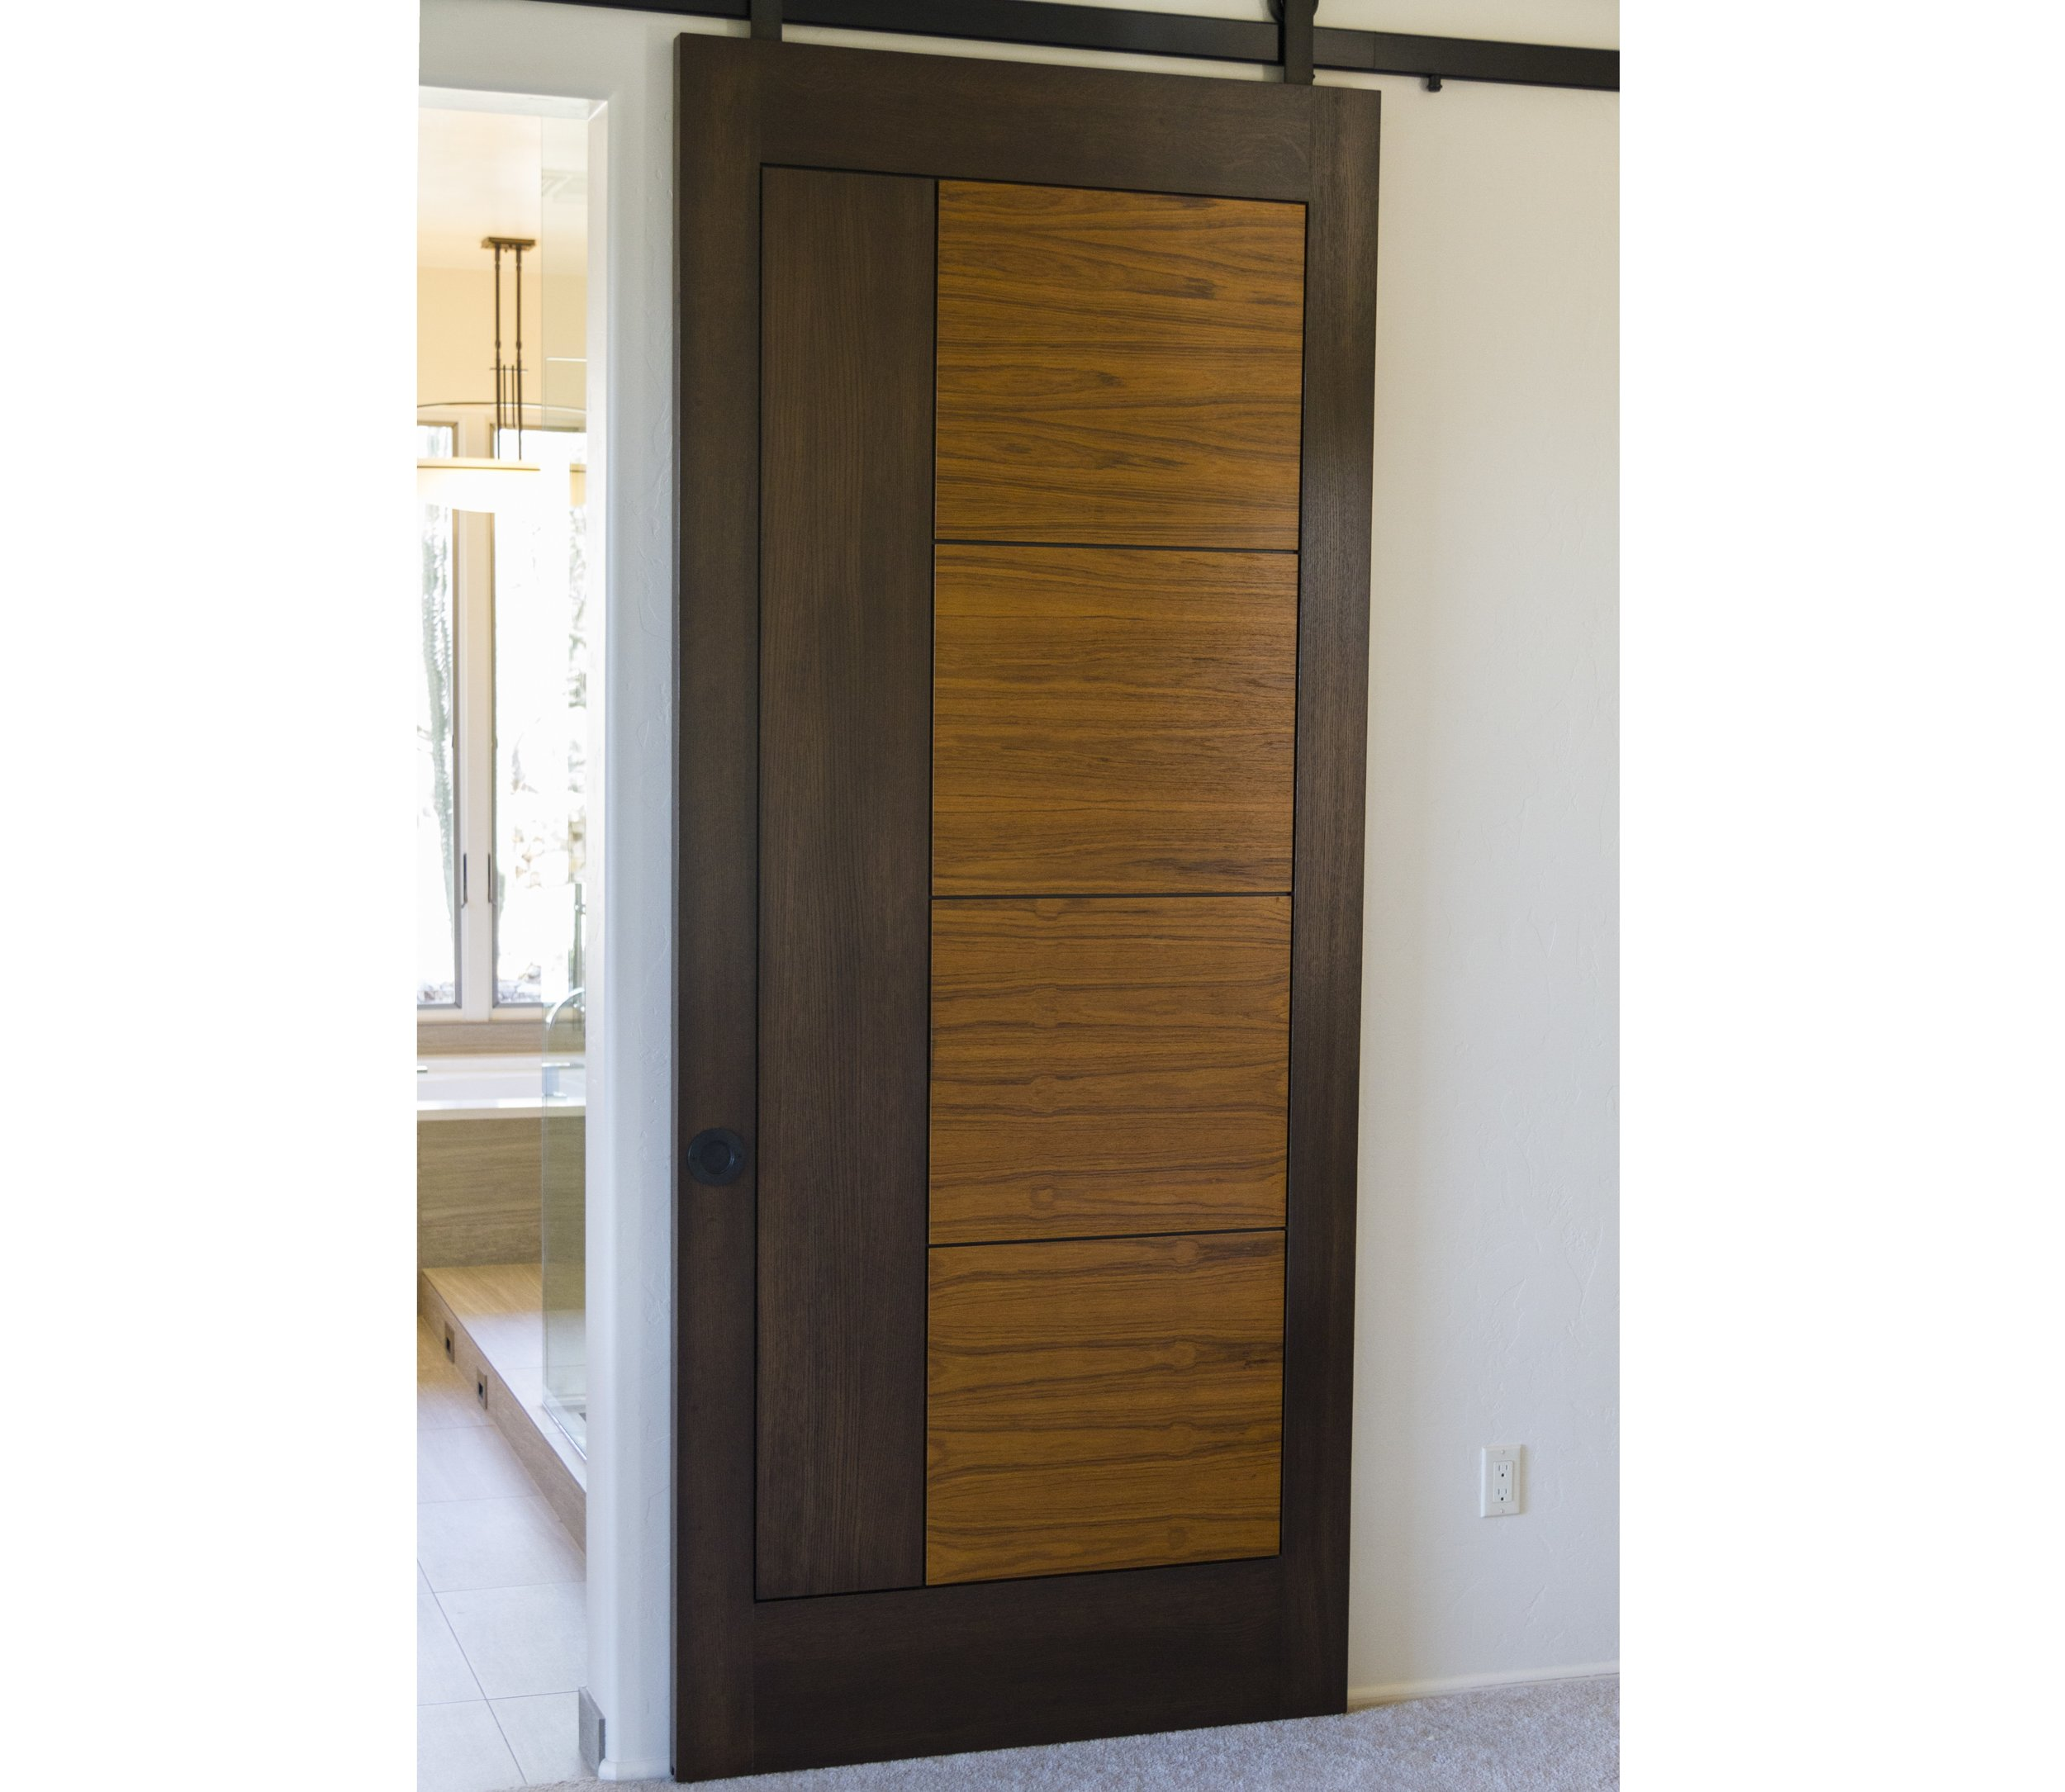 Barn Door - The homeowners wanted to keep a touch of whimsy and were easily sold on these unique sliding barn doors.A pair of custom wood sliding barn doors grace the far wall. The doors are constructed of rift-sawn white oak with teak panels. When closed, they hide the entry to the Master Bathroom and walk-in-closet.